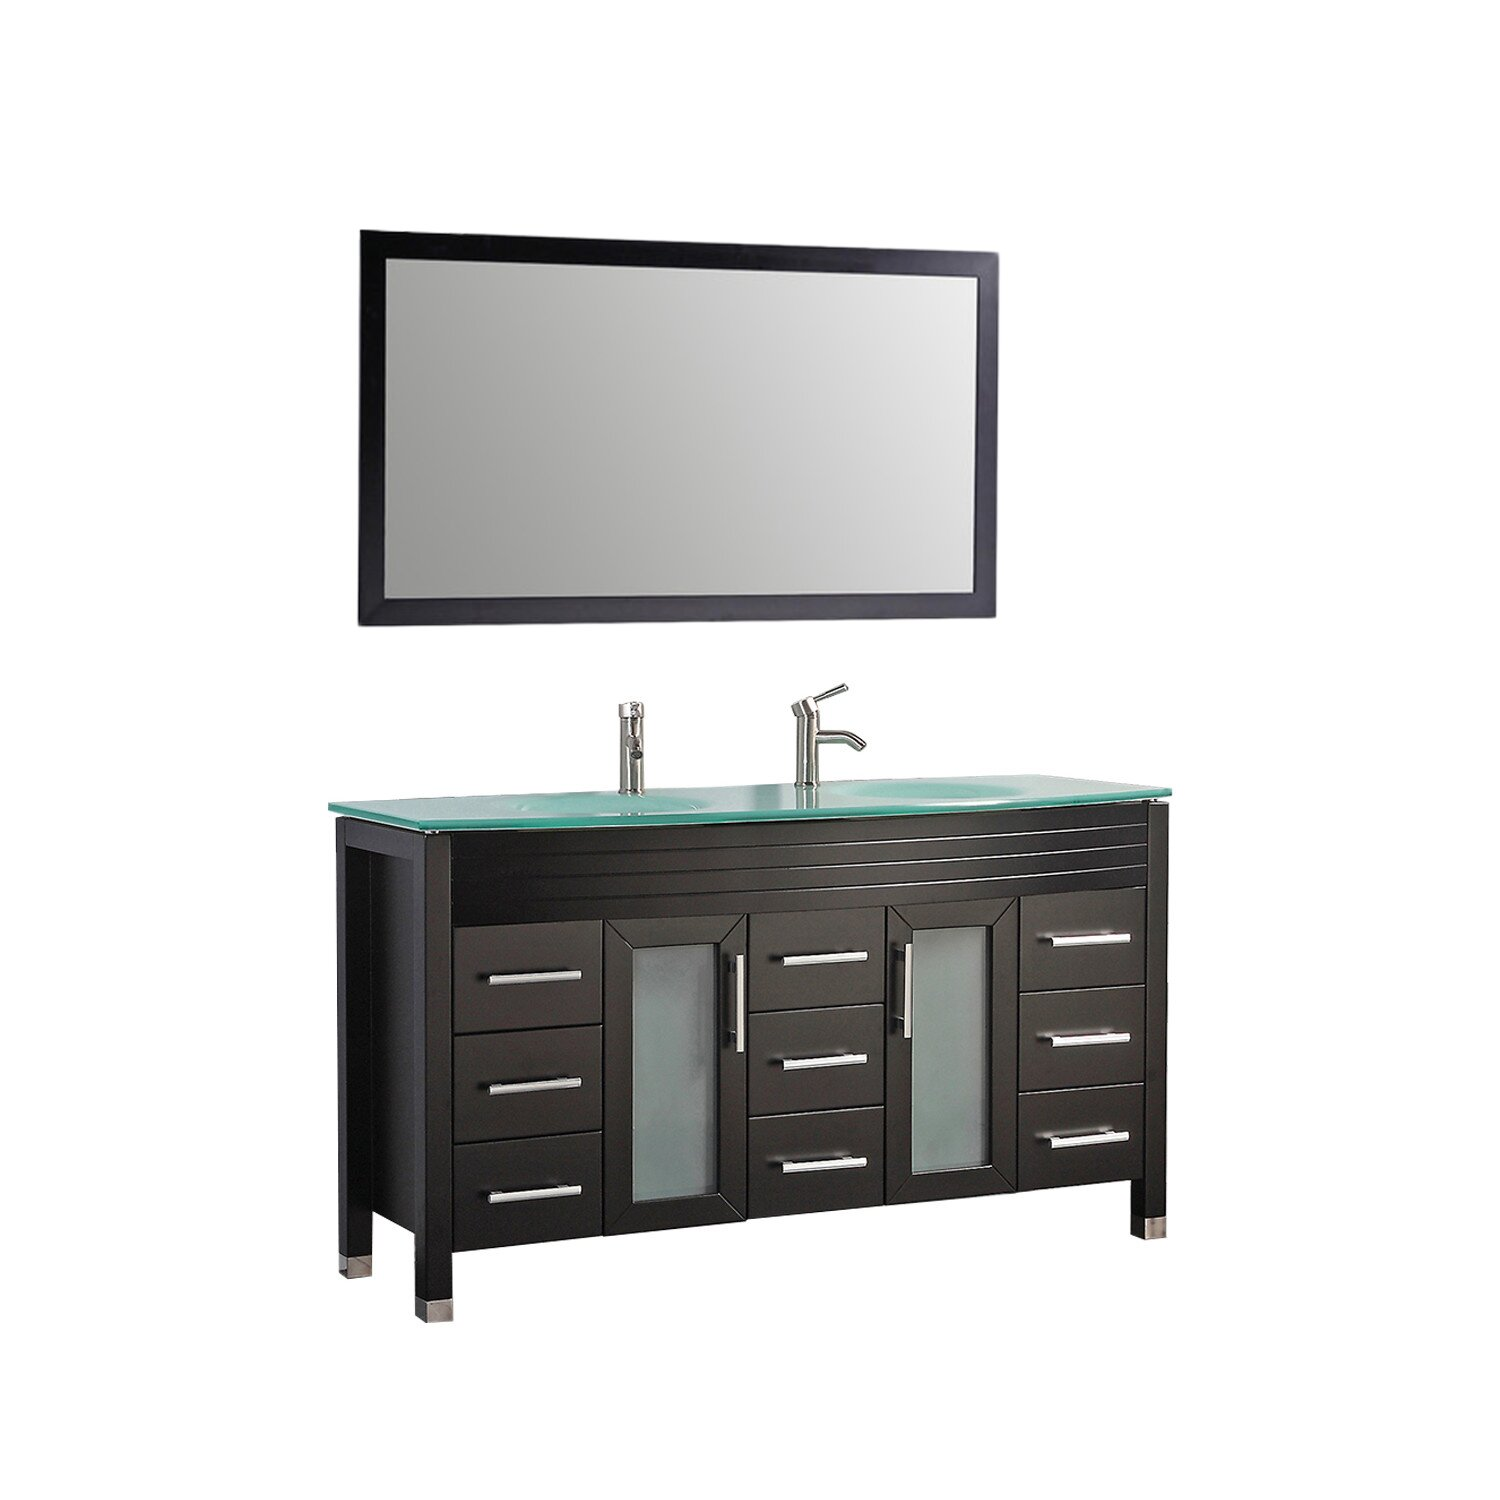 Mtdvanities figi 63 double sink bathroom vanity set with for Mirrors for bathroom vanity